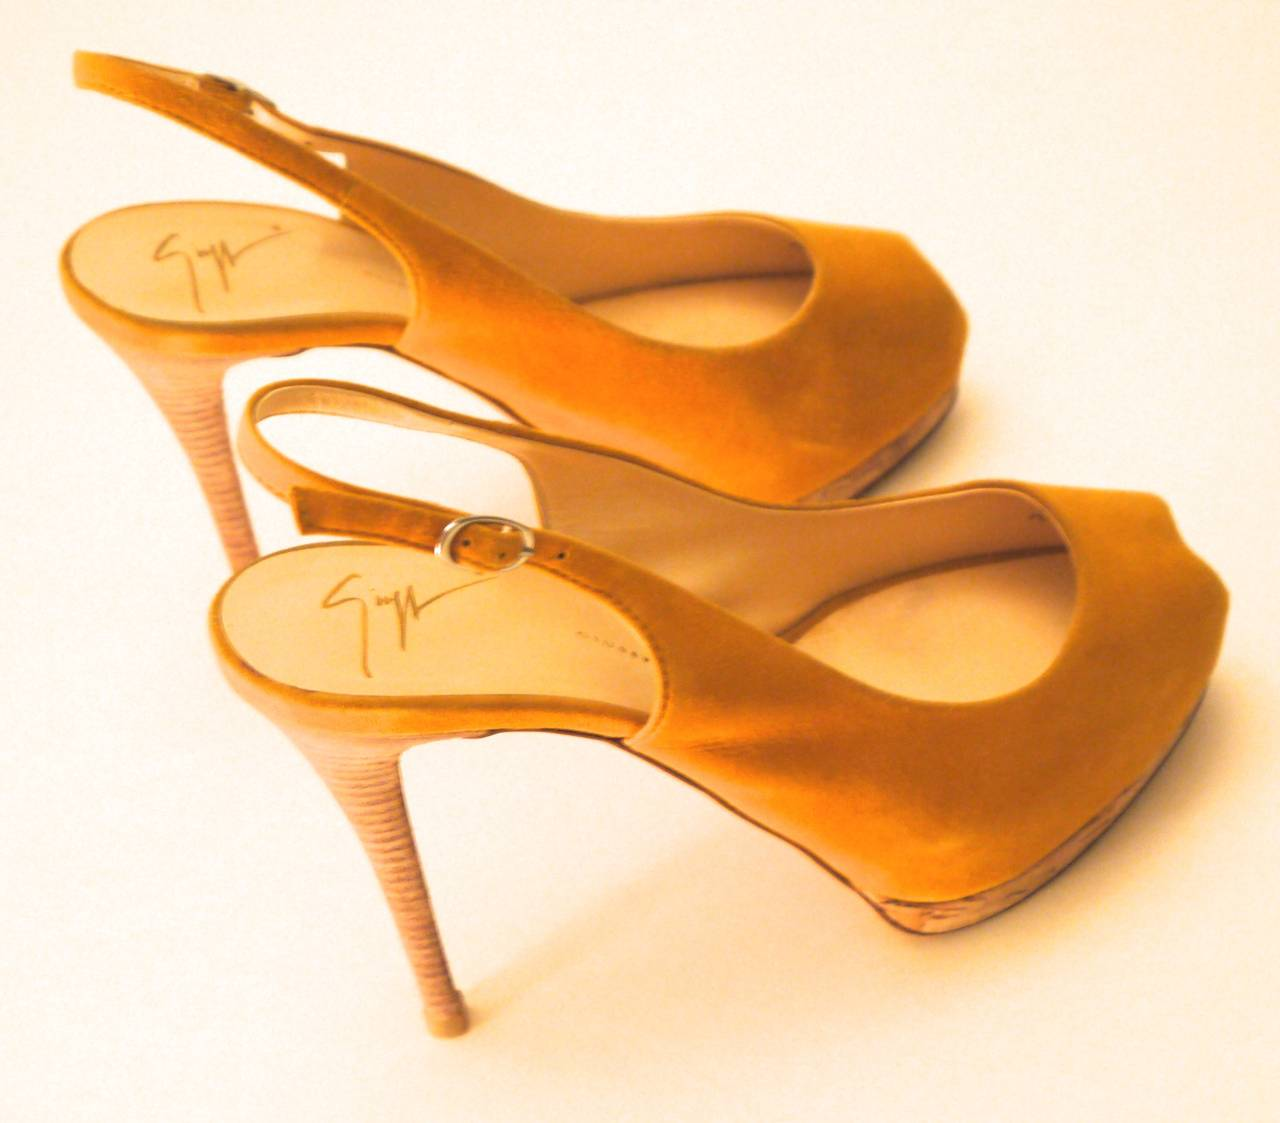 Orange Giuseppe Zanotti Yellow Suede Open Toe Heels with Sling Strap - Size 37 For Sale